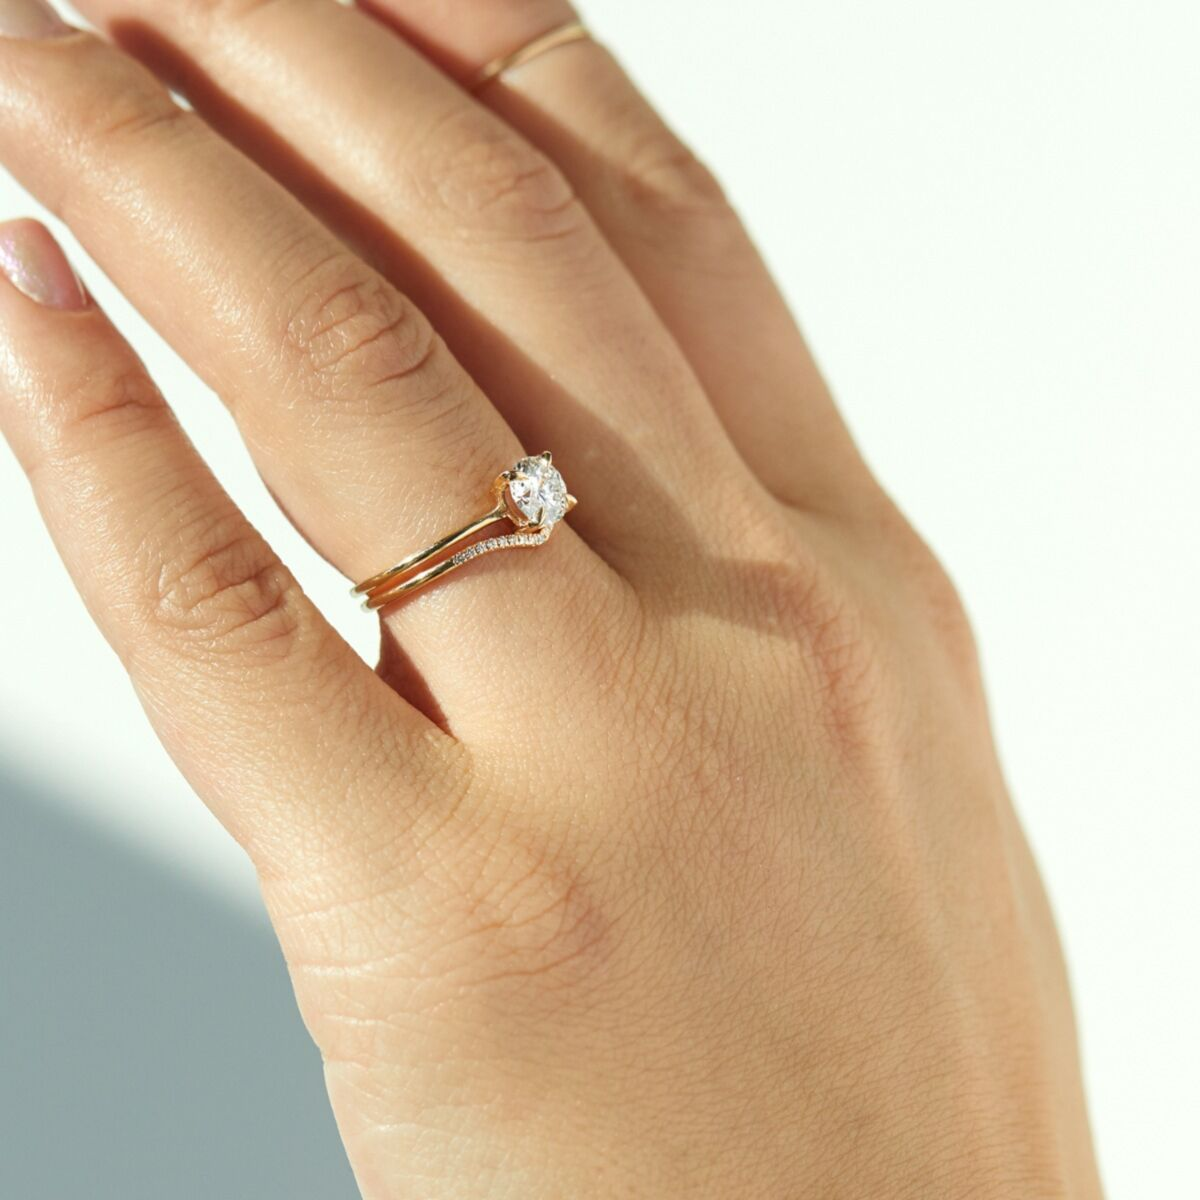 The Swan Solitaire image